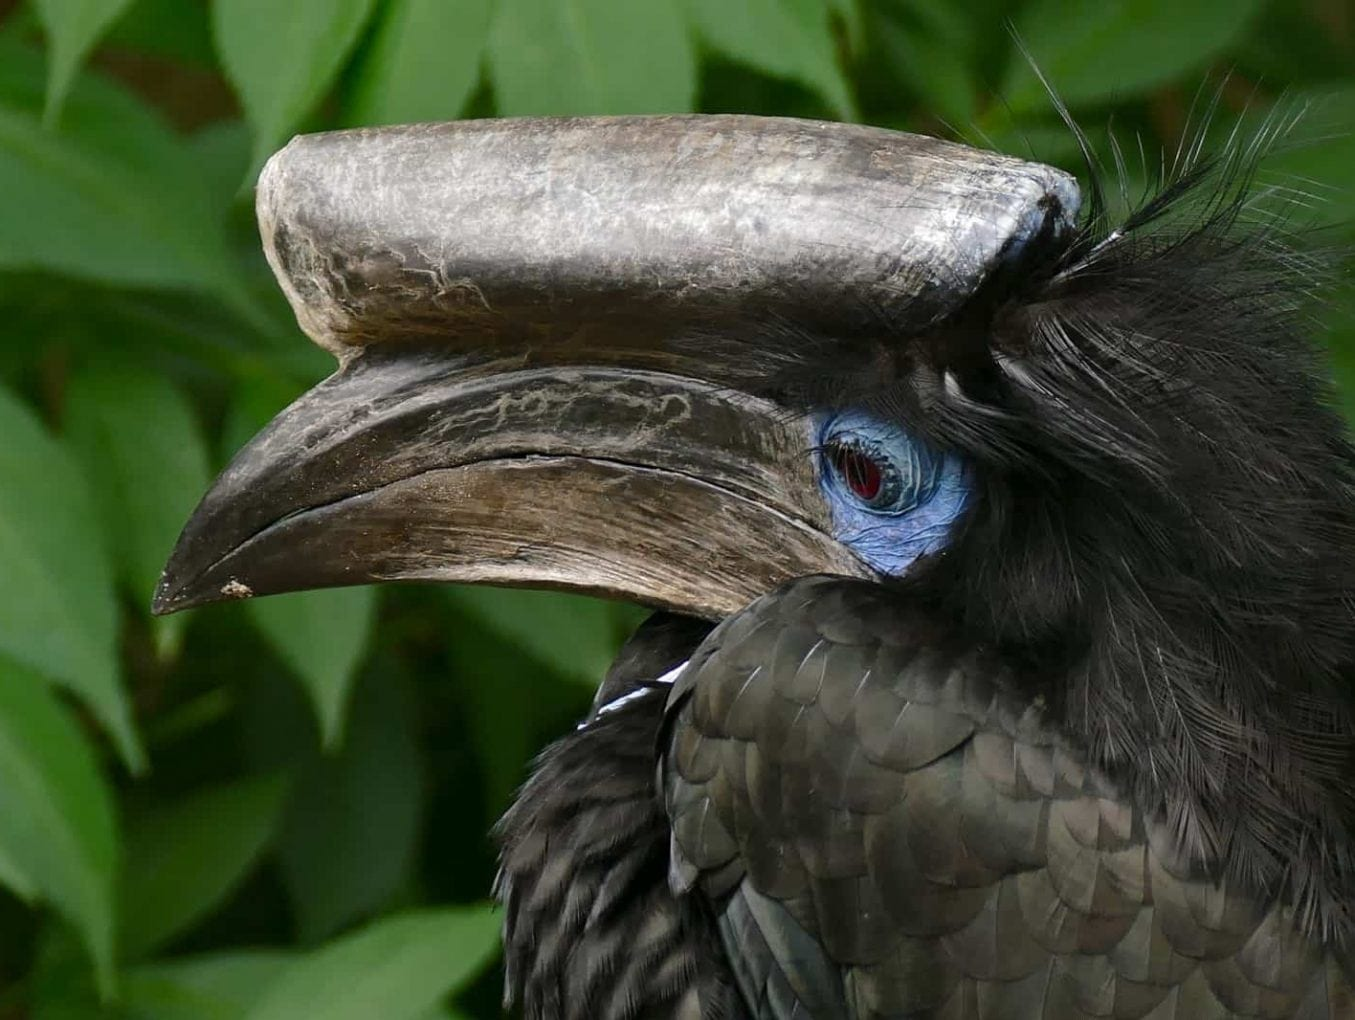 Bushmeat hunting threatens hornbills and raptors in Cameroon's forests, study finds